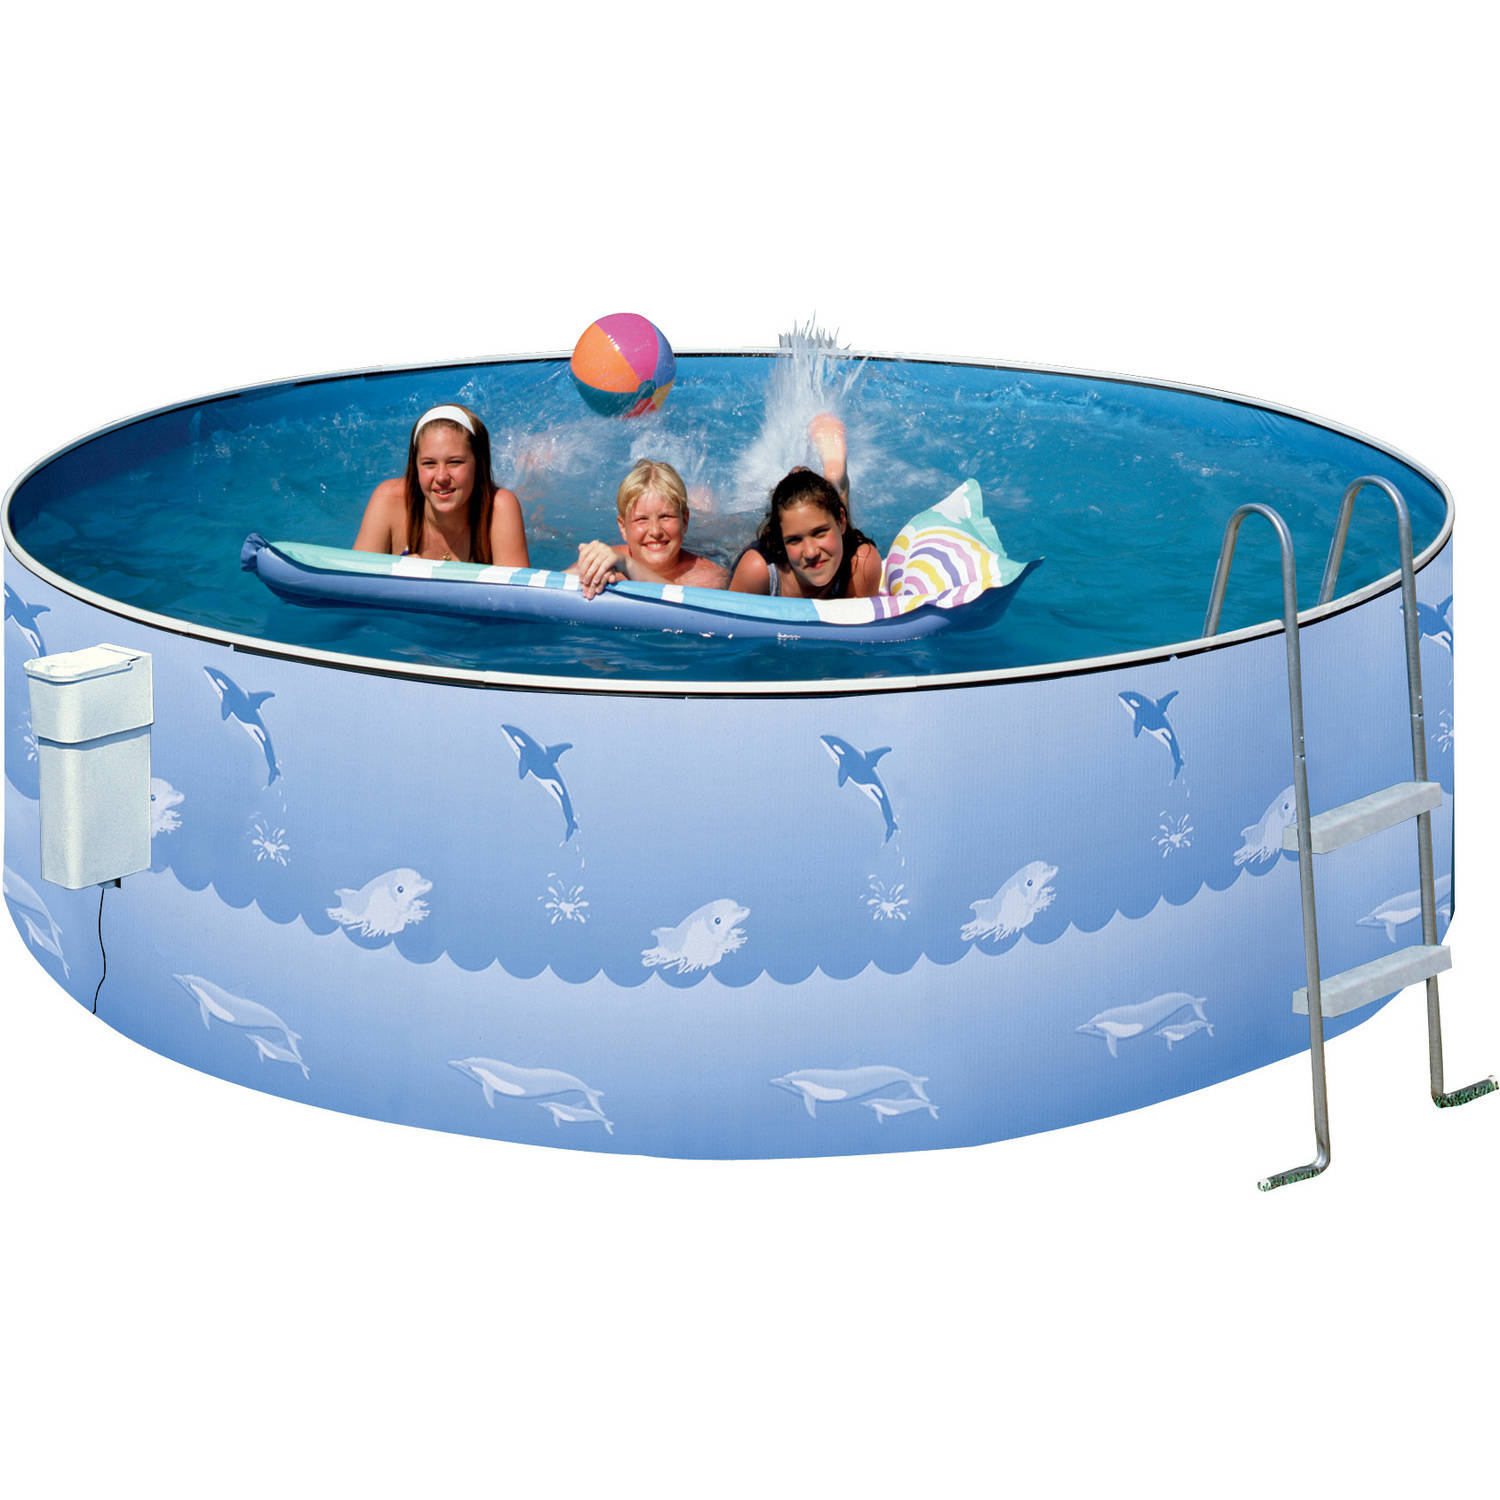 "Heritage Round 15' x 36"" Above Ground Swimming Pool"